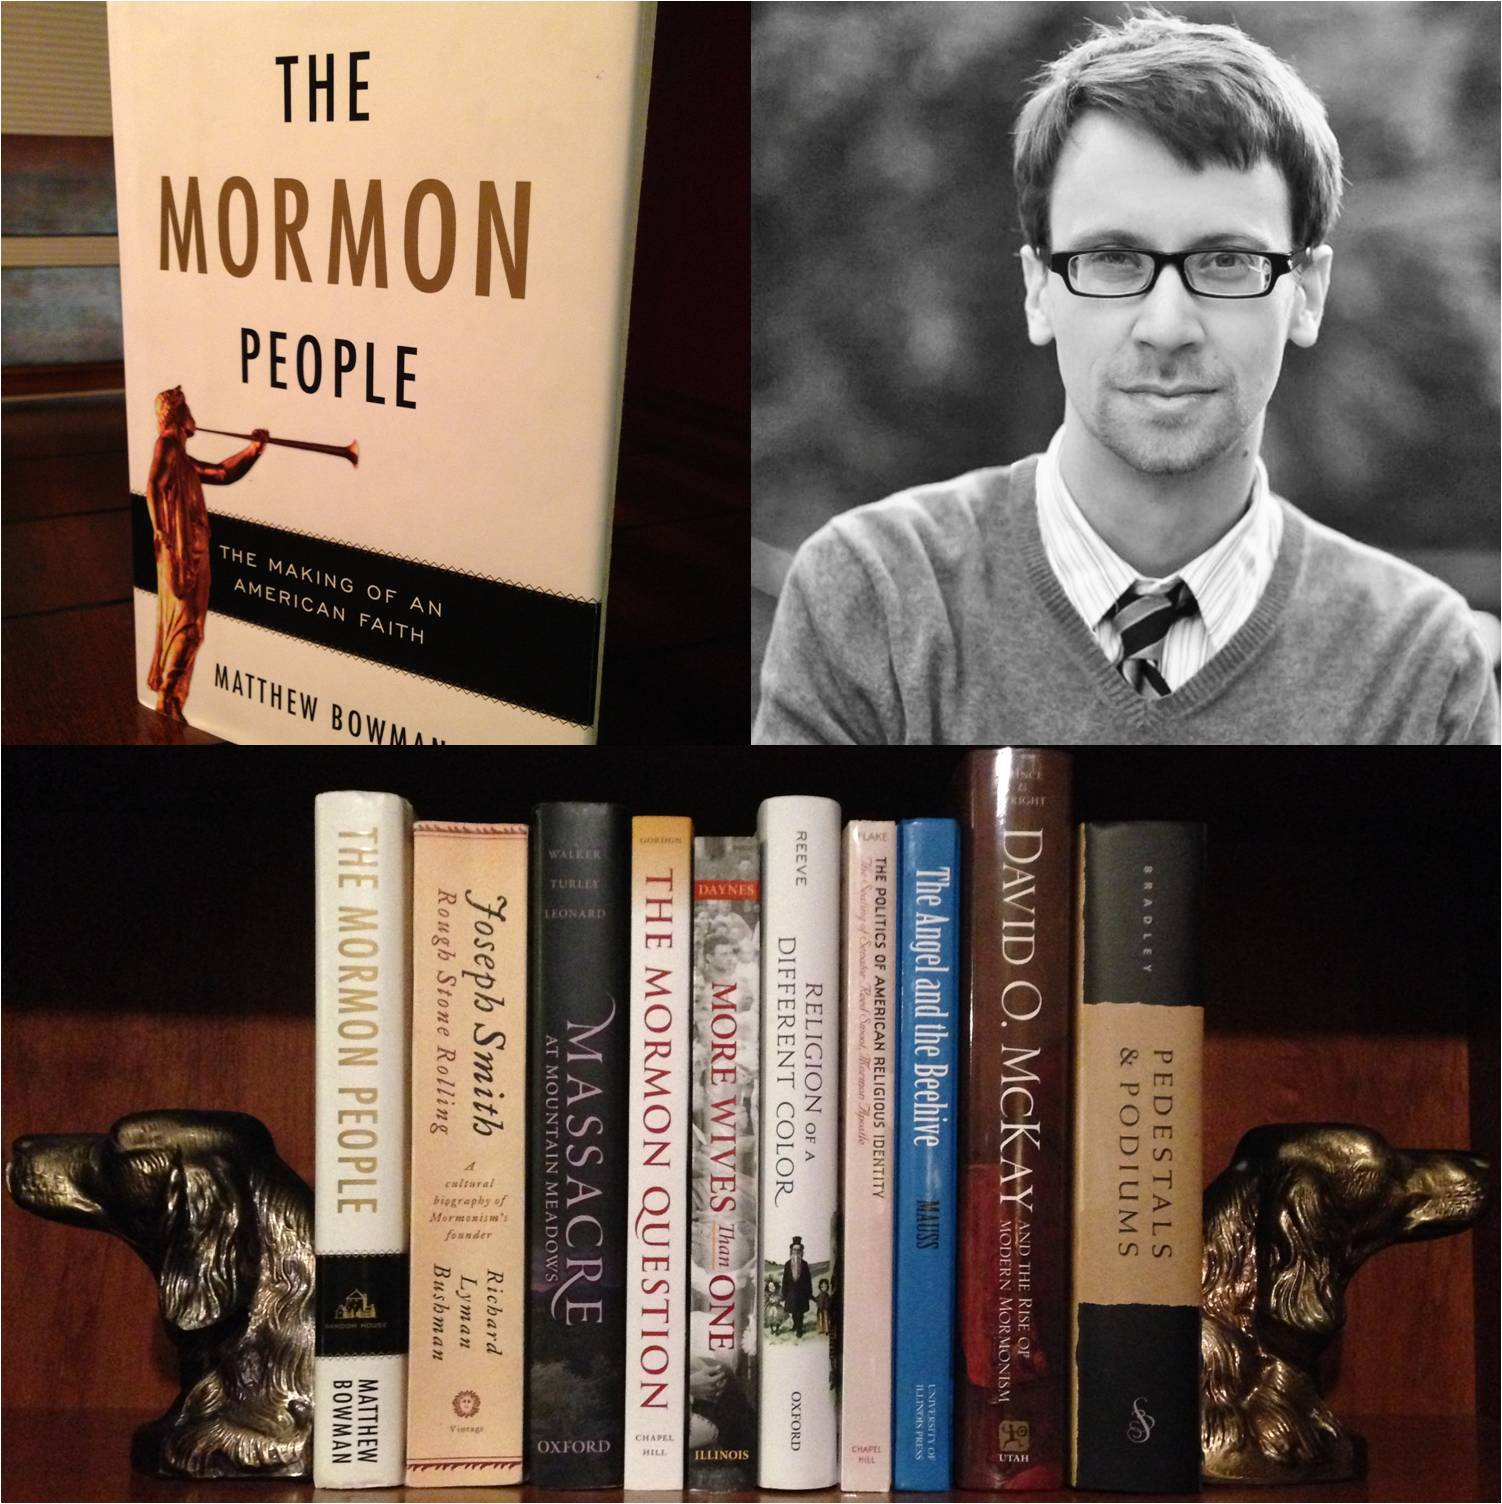 50: Top Ten Books on Mormon History – The Mormon People: The Making of an American Faith